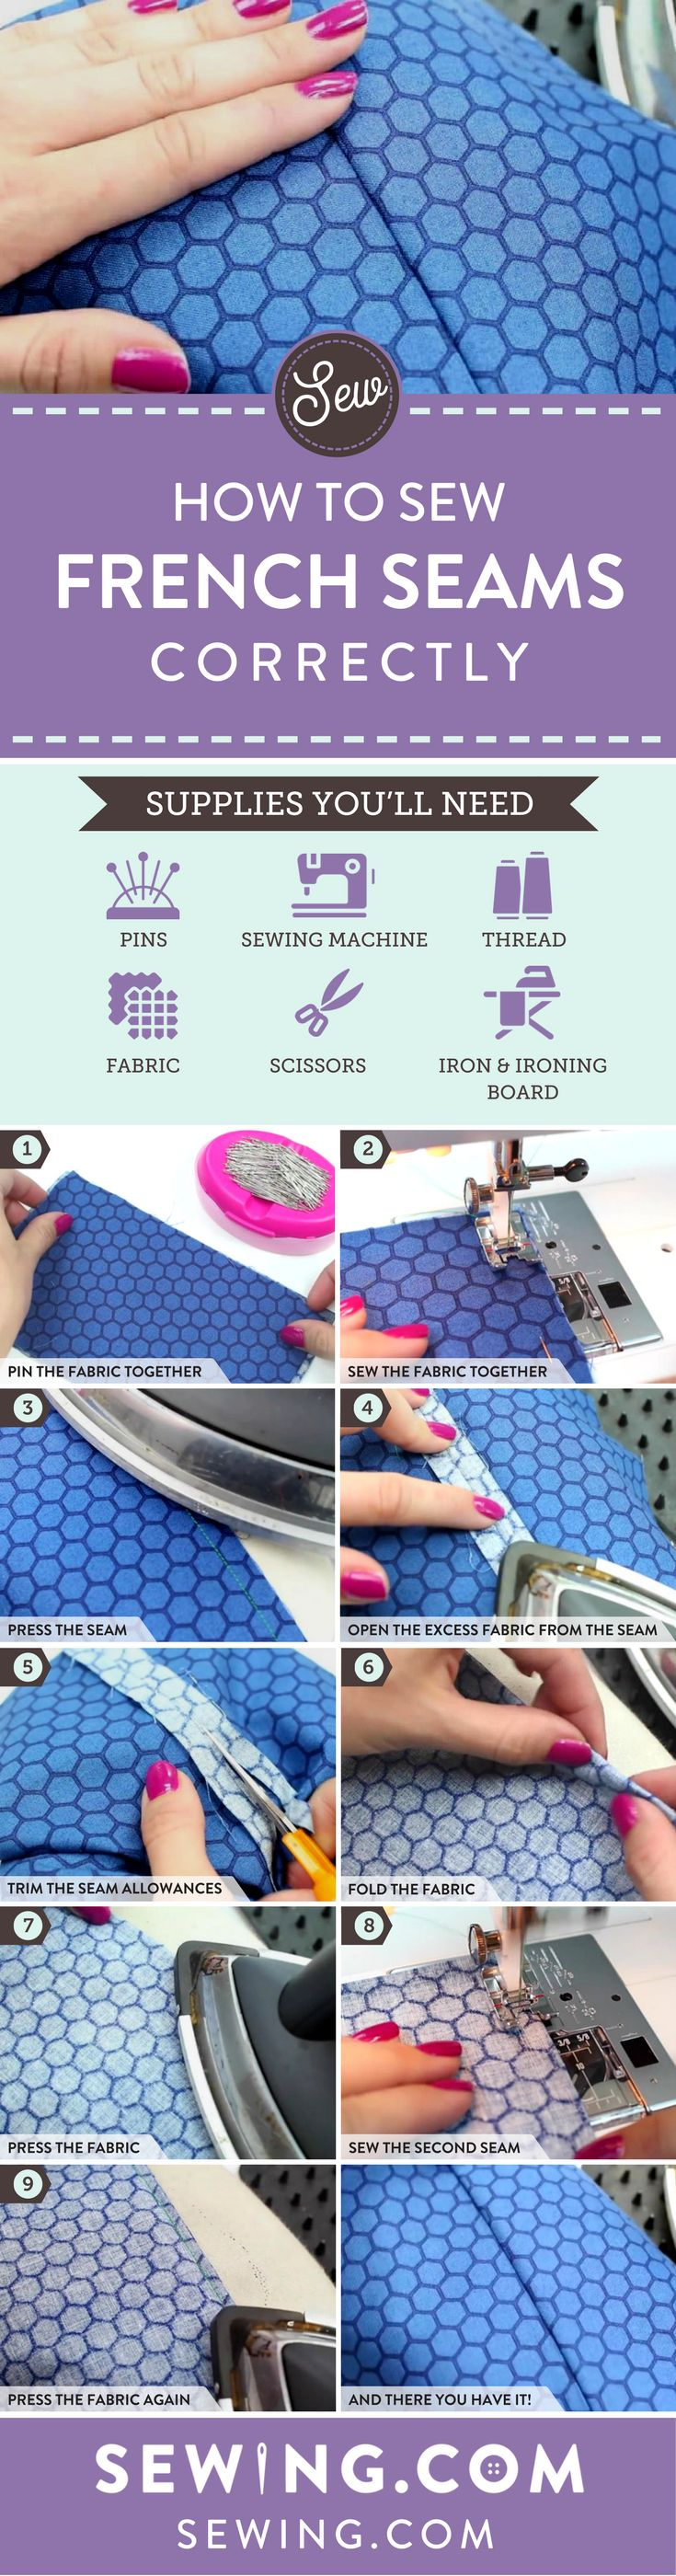 How To Sew French Seams Correctly I Sewing Tips For Beginners & 25+ unique French seam ideas on Pinterest | Sewing pillow cases ... pillowsntoast.com